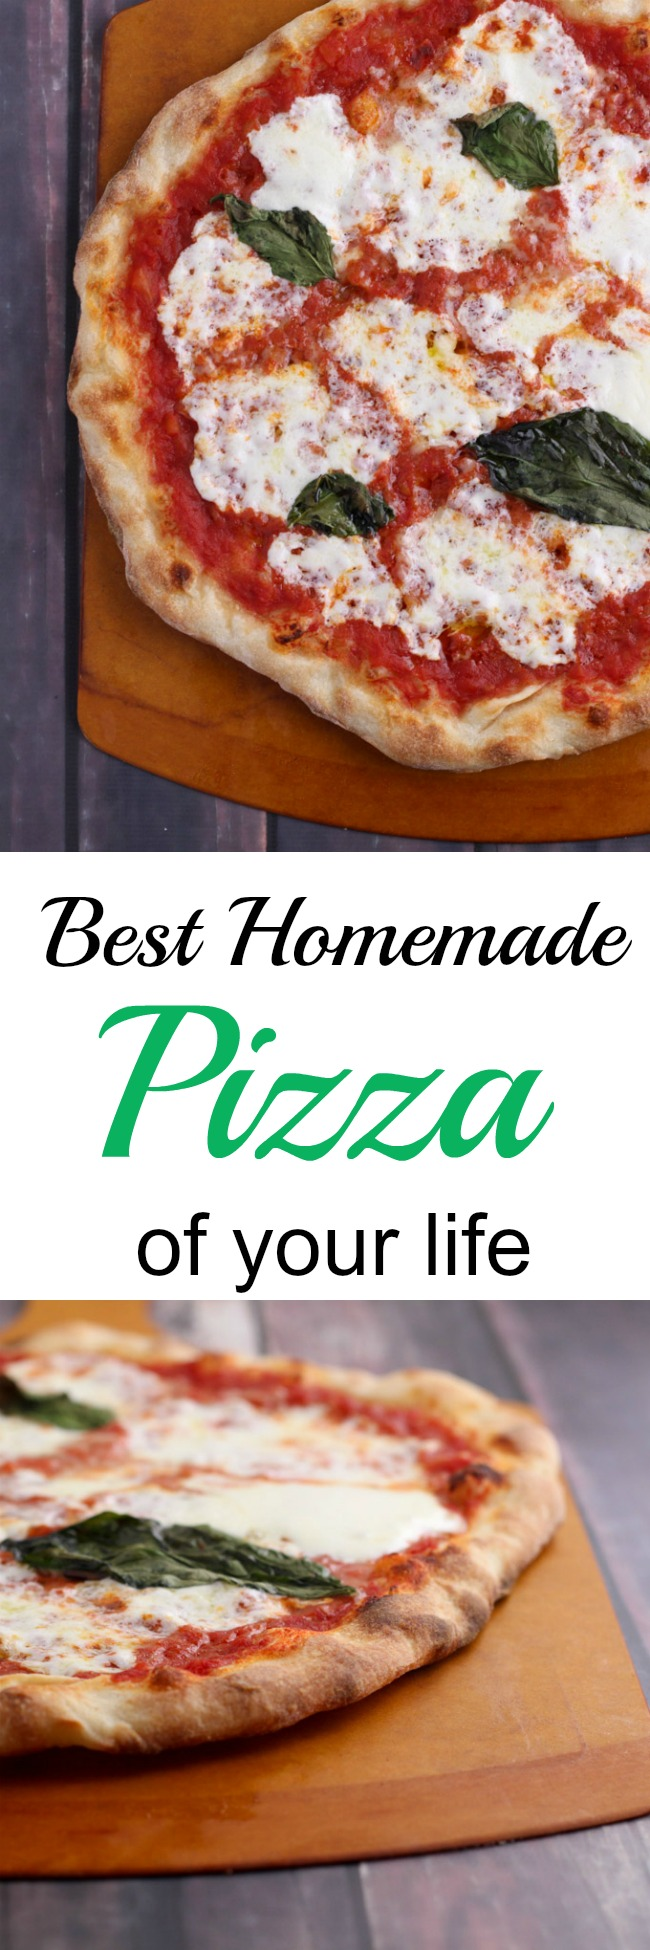 A perfect weekend recipe for pizza that will change your life. It takes some time and effort, but it's worth is and your friends and family will love making it with you! www.cookingismessy.com